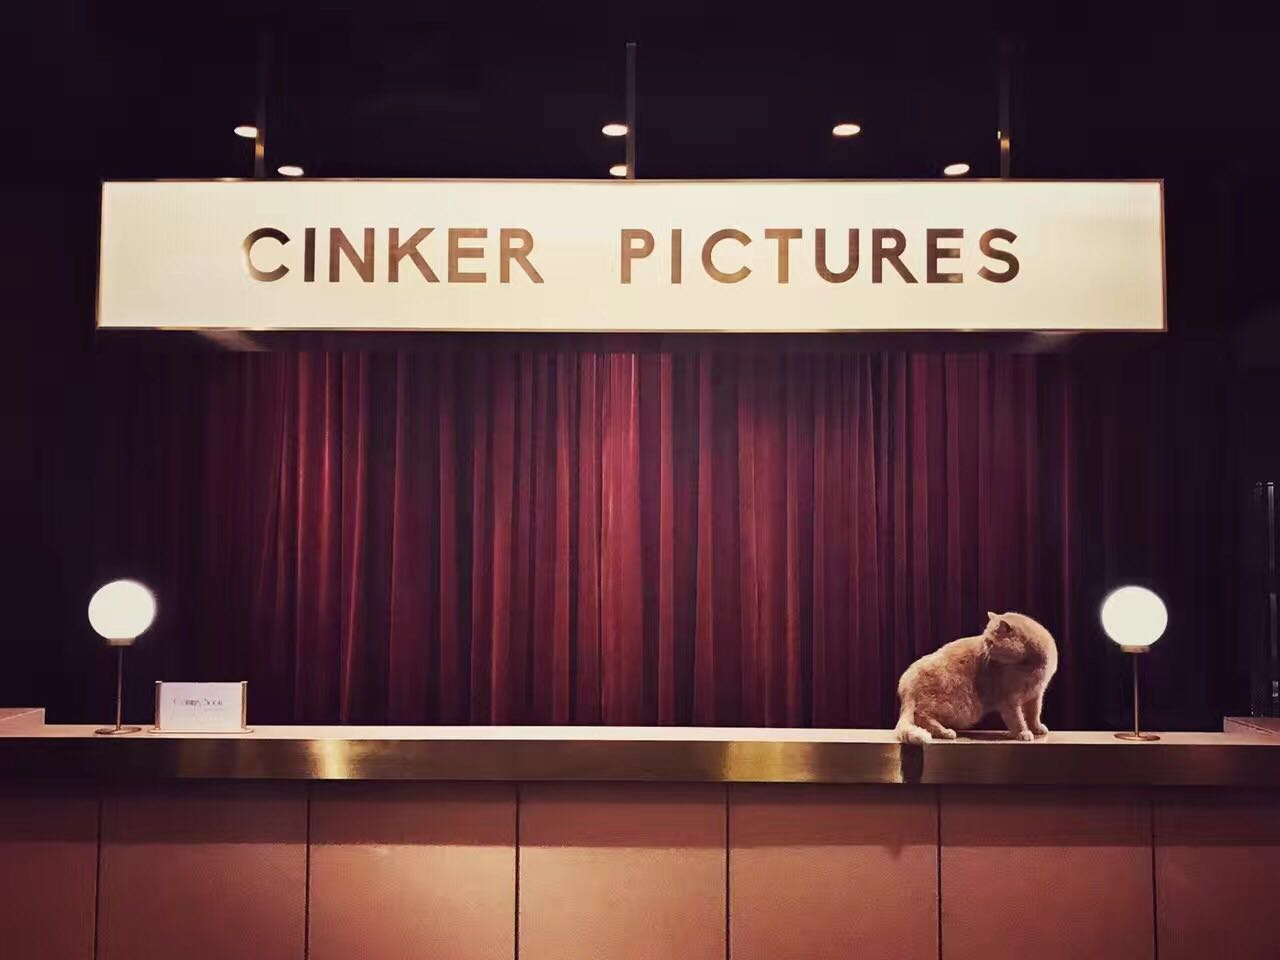 Pictures Cinker Cinema Bespoke Travel Co